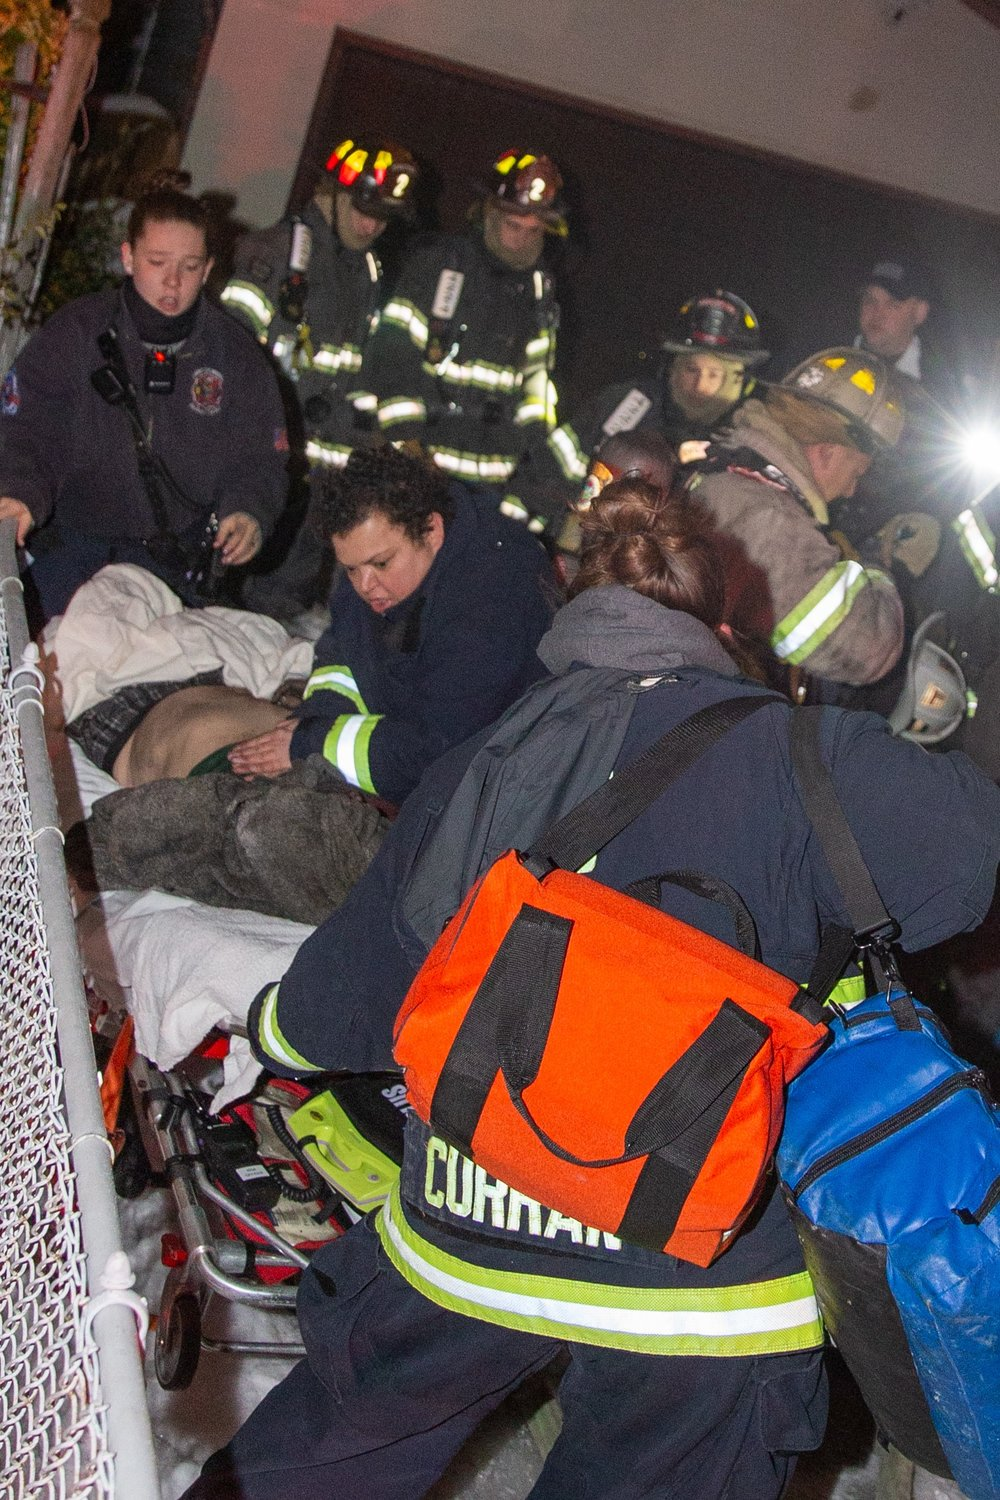 Lynbrook firefighters and EMTs performed CPR on the man after firefighters pulled him from the burning basement.